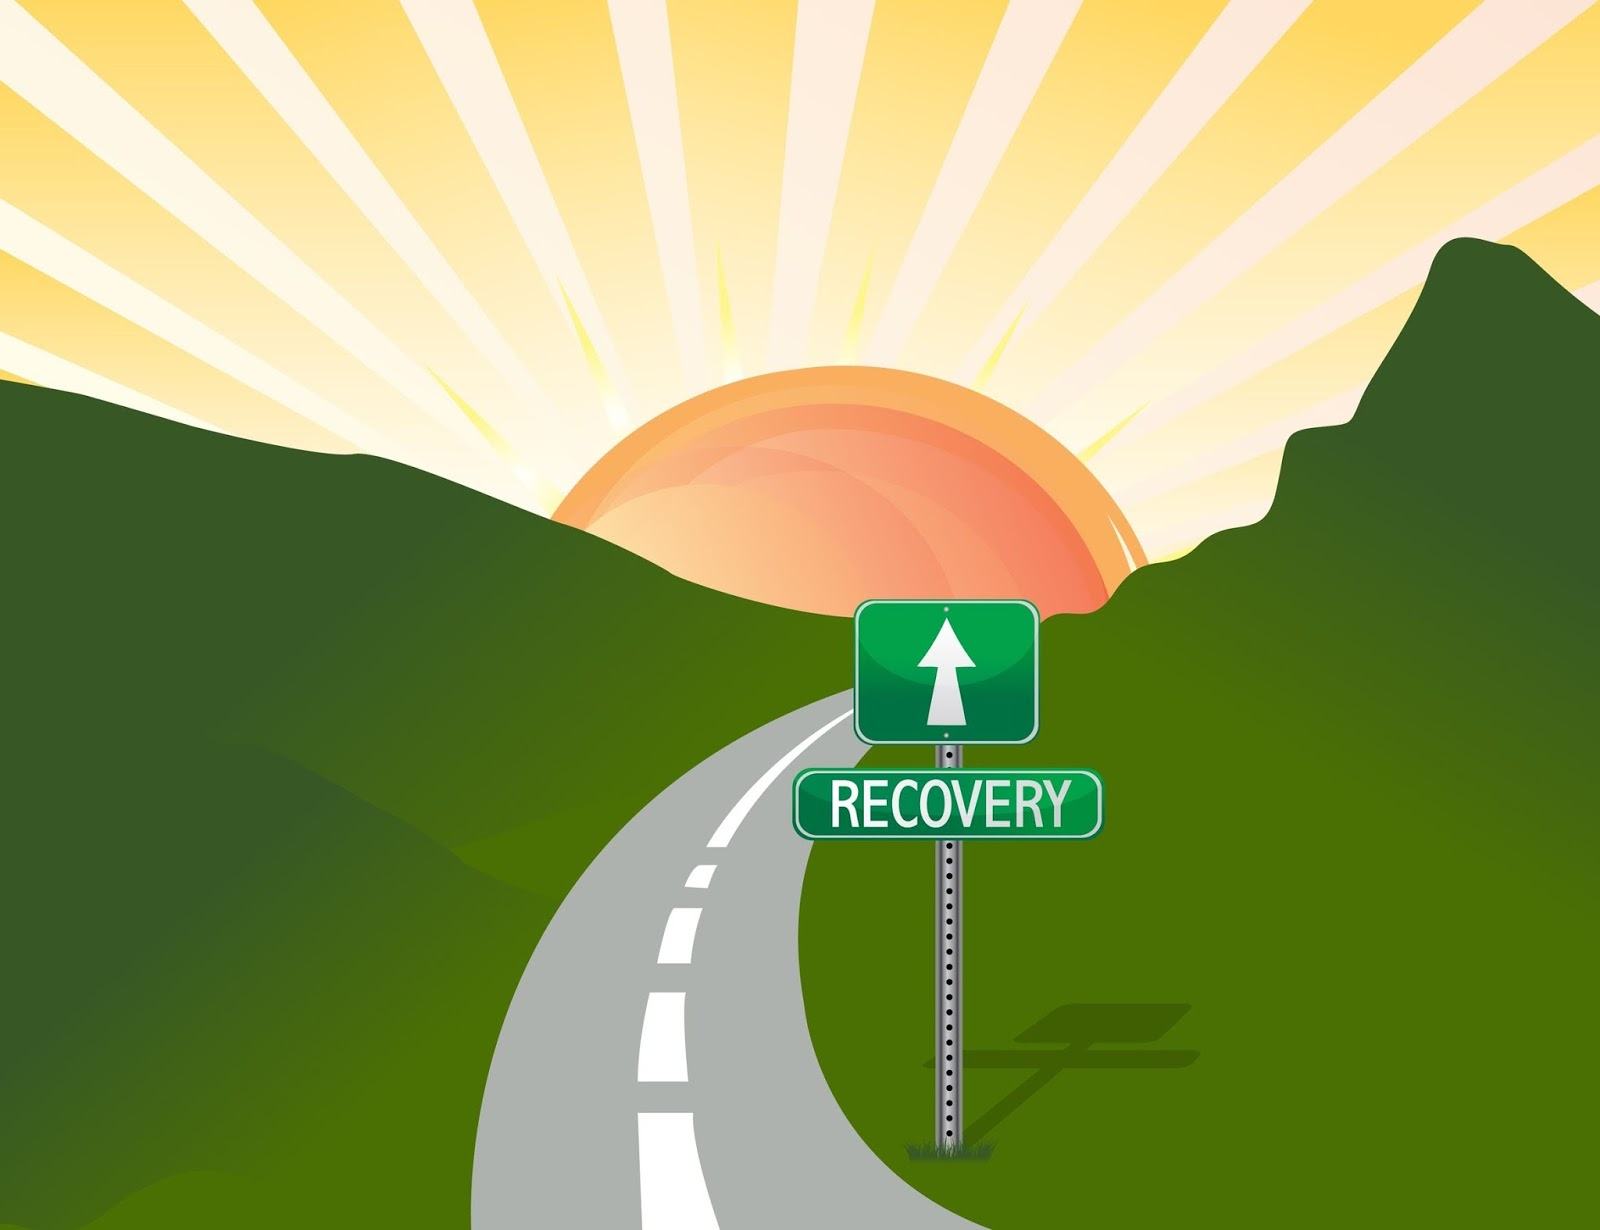 Worksheets Step 8 Worksheet In Recovery the road to recovery step 8 reaching hurting women are merciful matthew 57 peacemakers 59